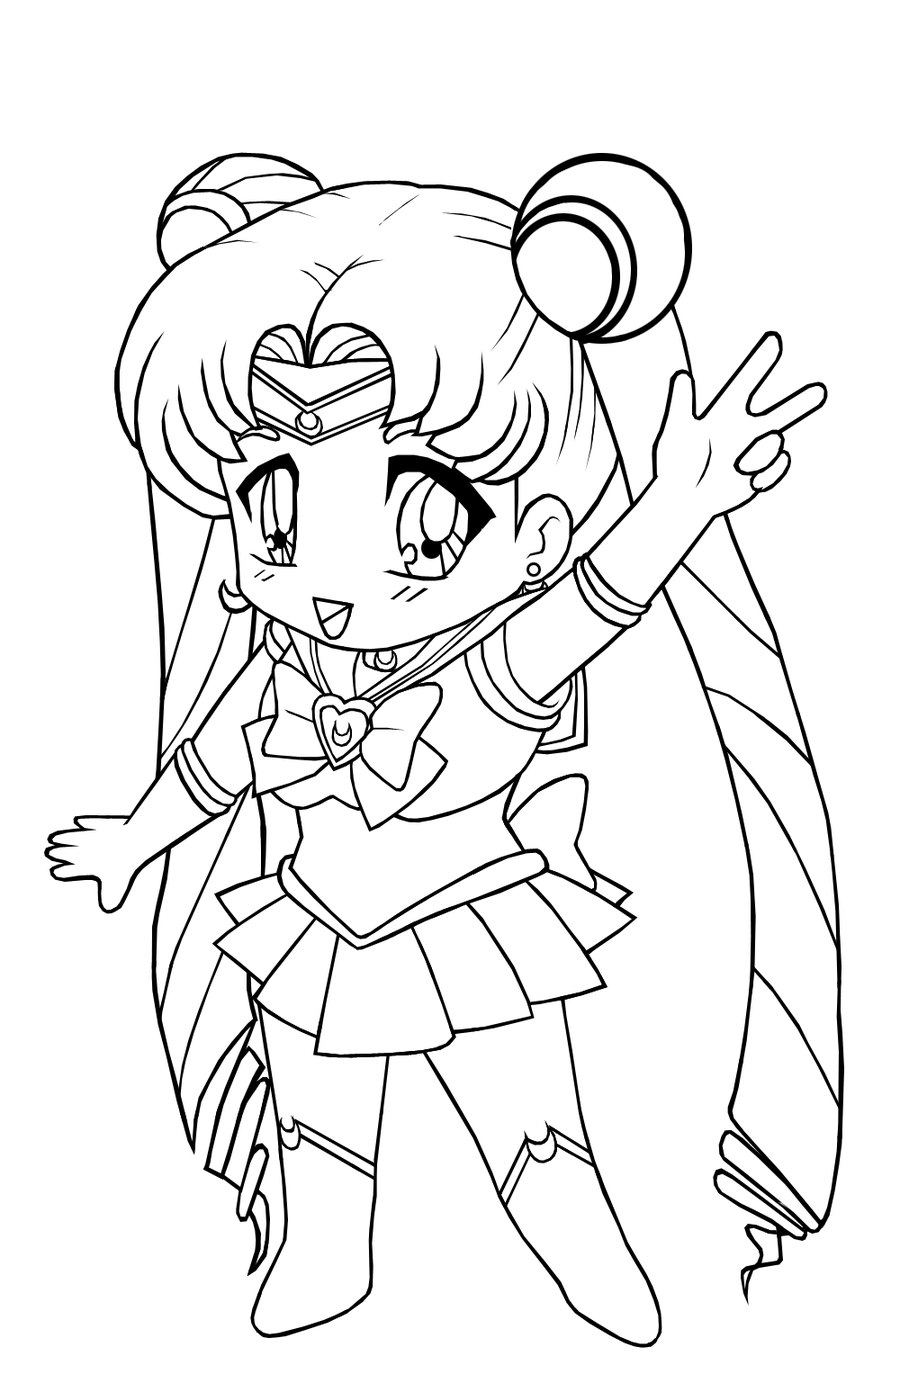 sailor moon coloring pages silor moon coloring pagrs minister coloring coloring moon pages sailor